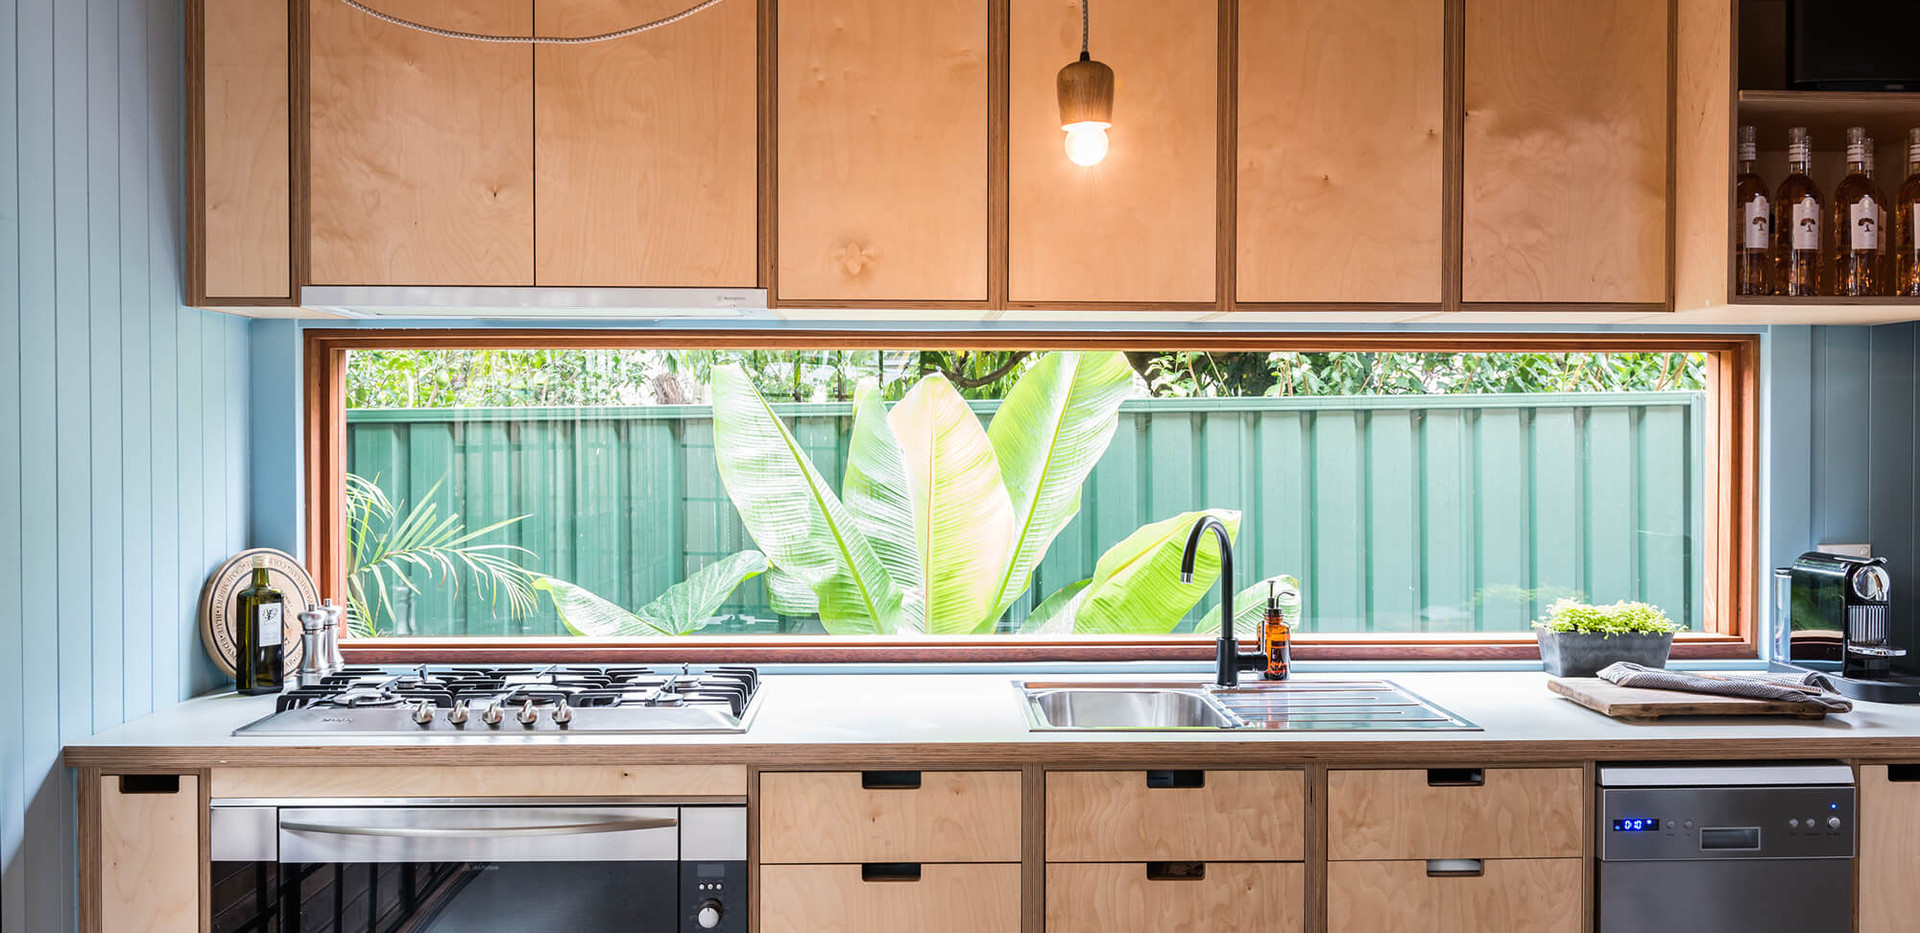 Tempe Garden Dwelling - interior design for residential house - Kitchen